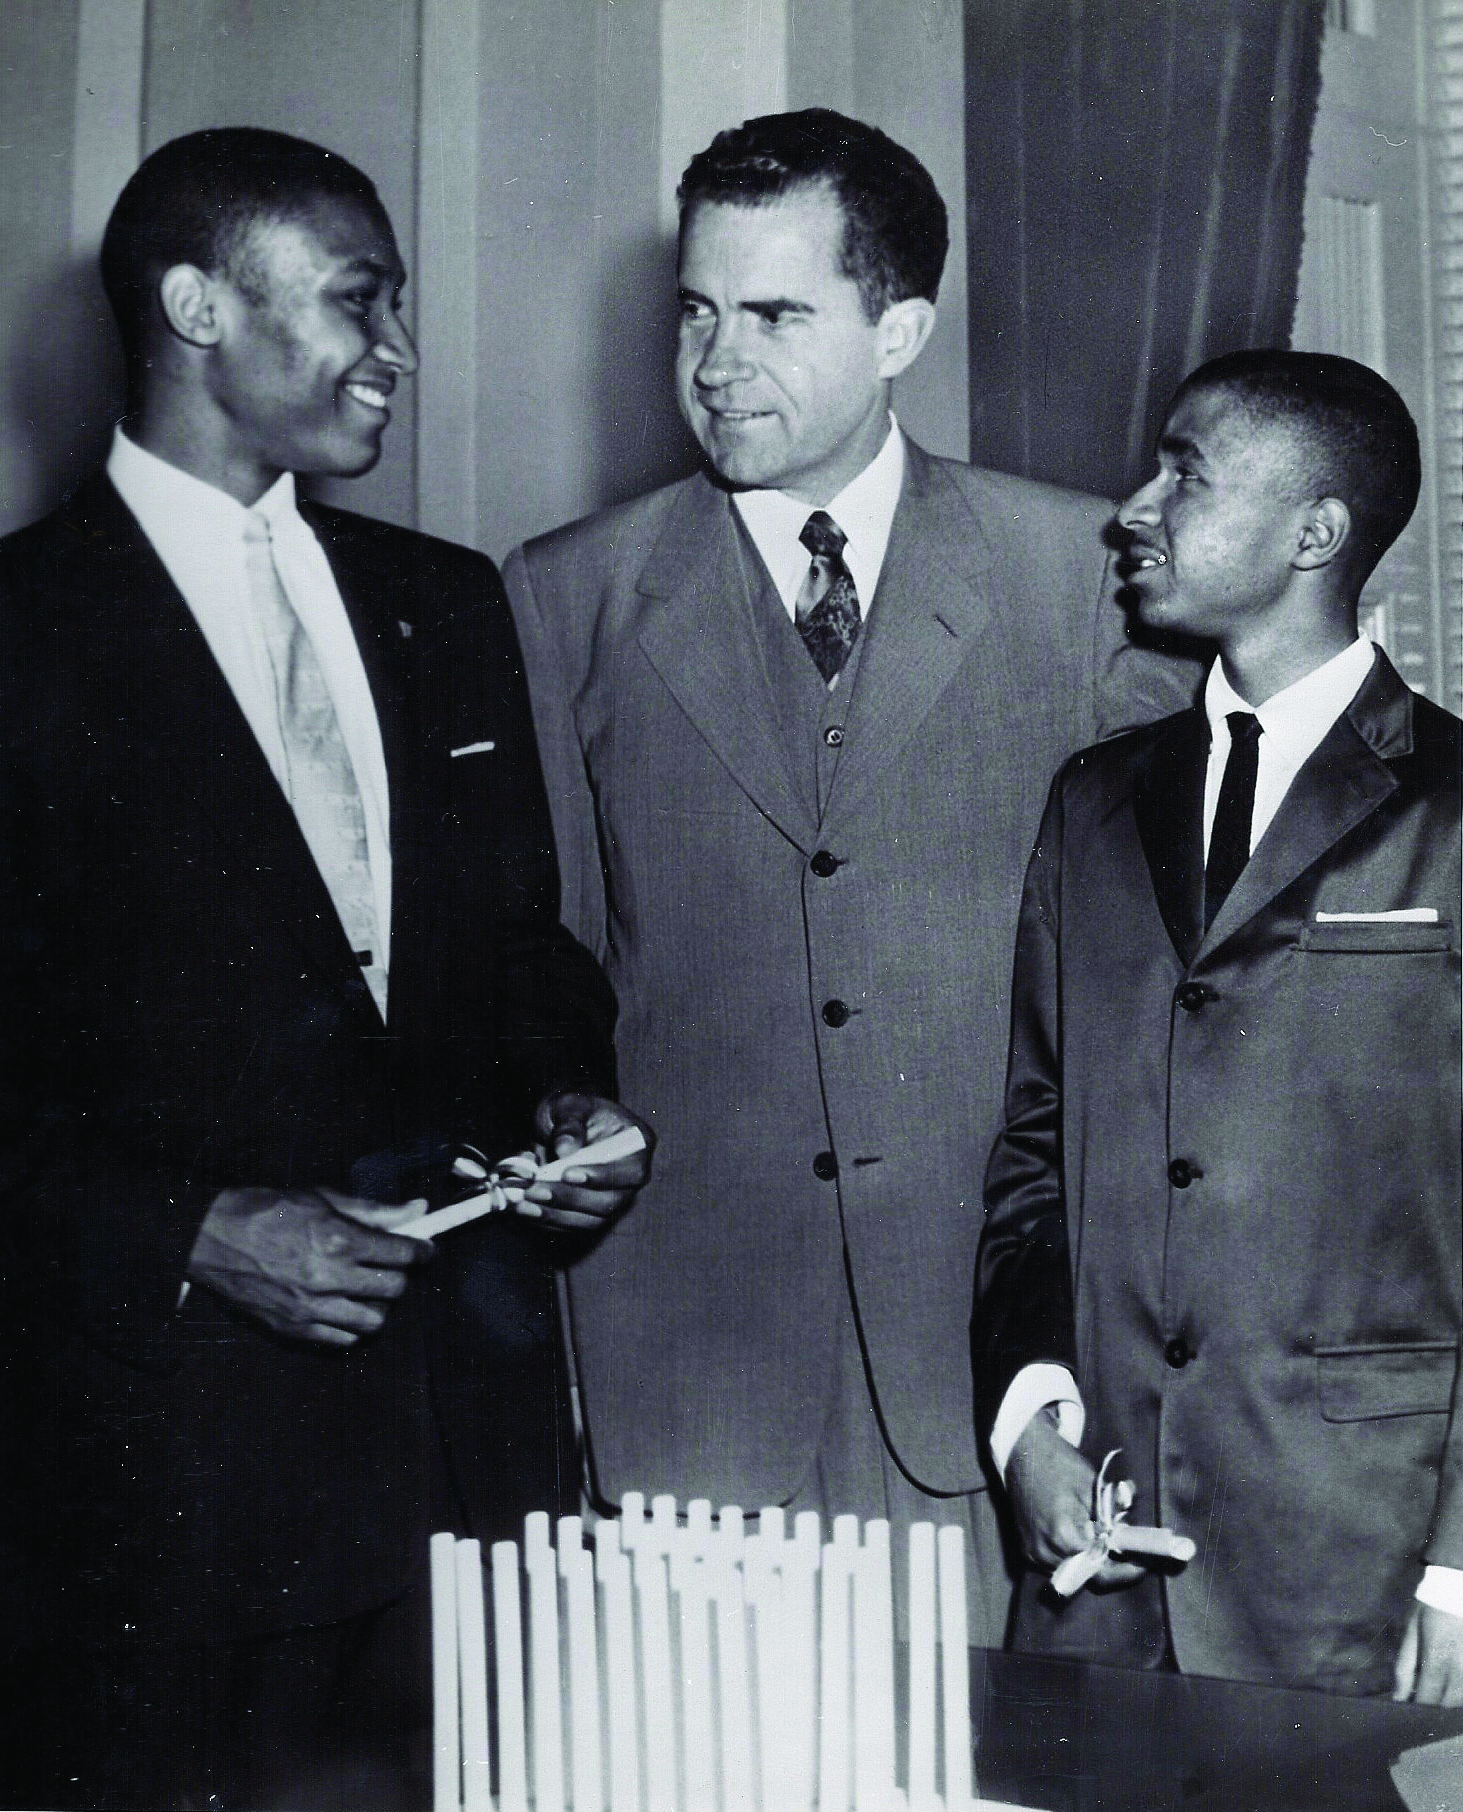 Congratulations from the President: Charles Bush (left) receives his high shcool graduation from the Page School. The diploma was signed by Dwight D. Eisenhower and presented by Richard Nixon (middle).